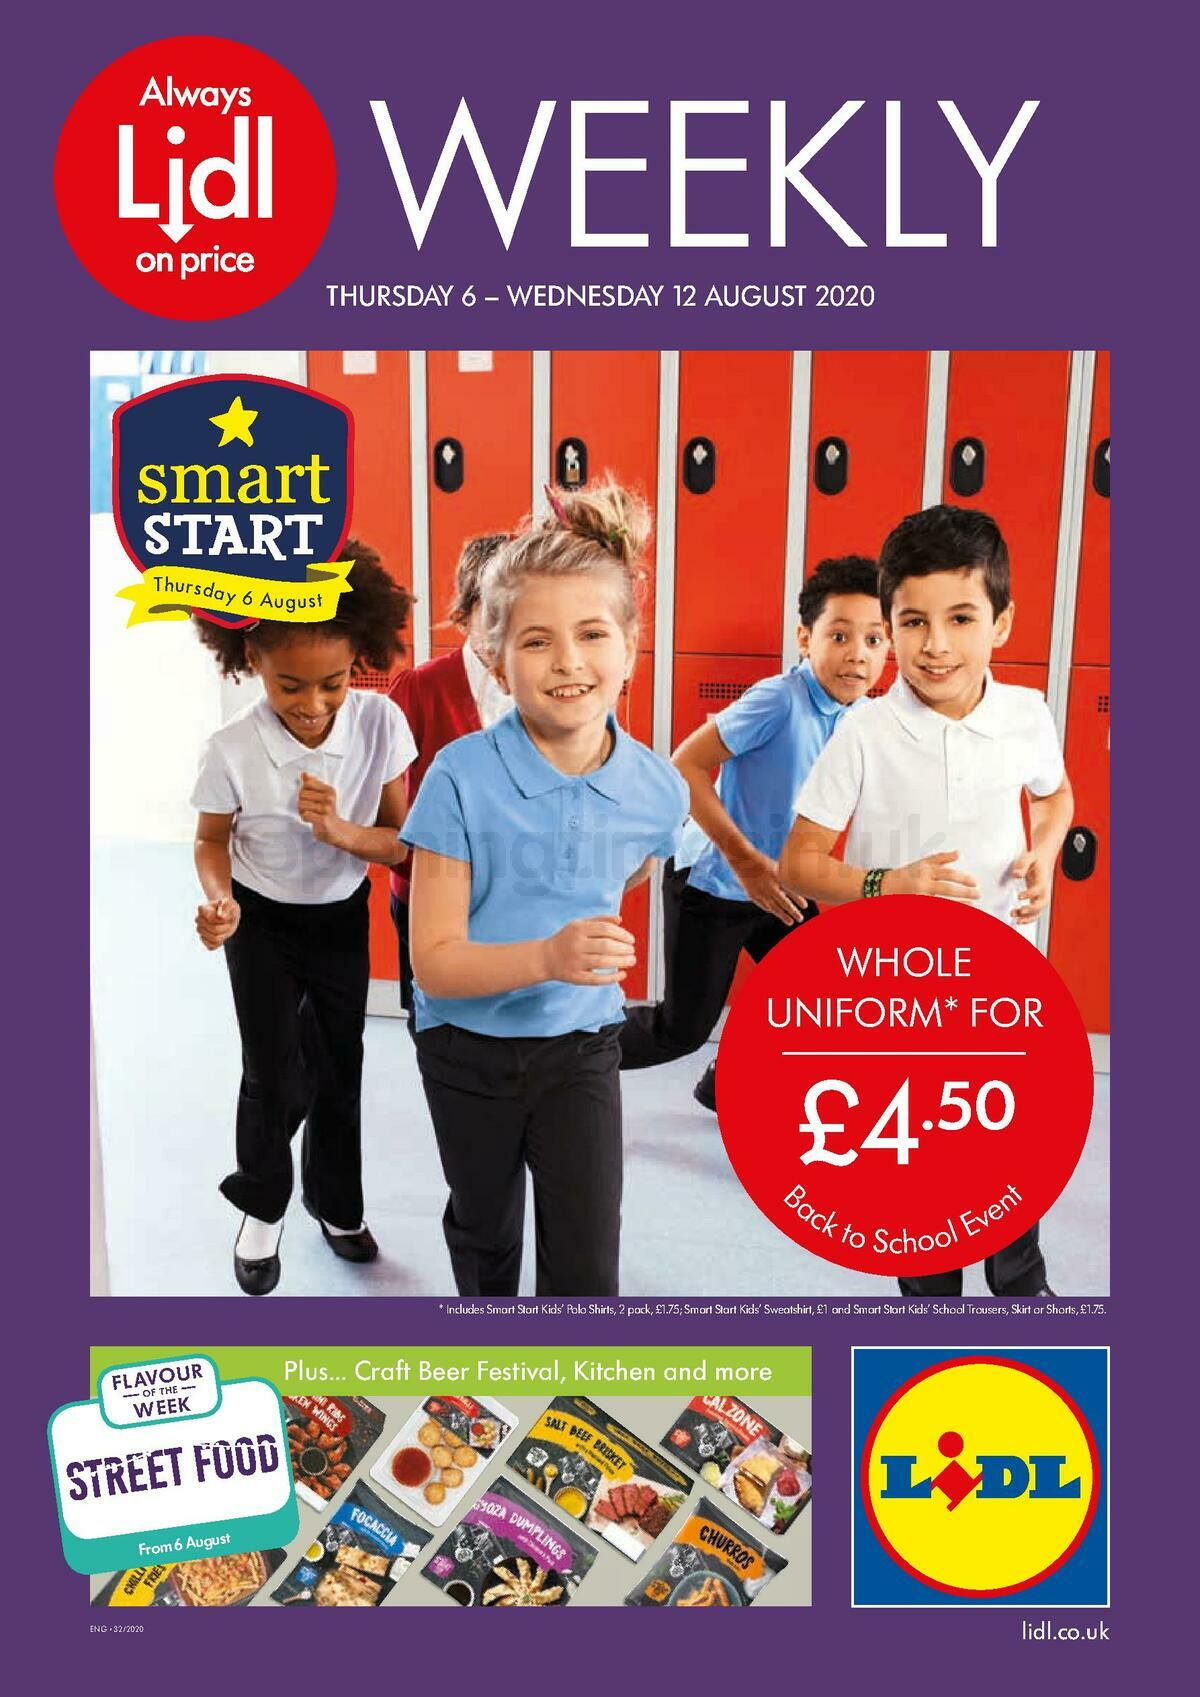 LIDL Offers from August 6